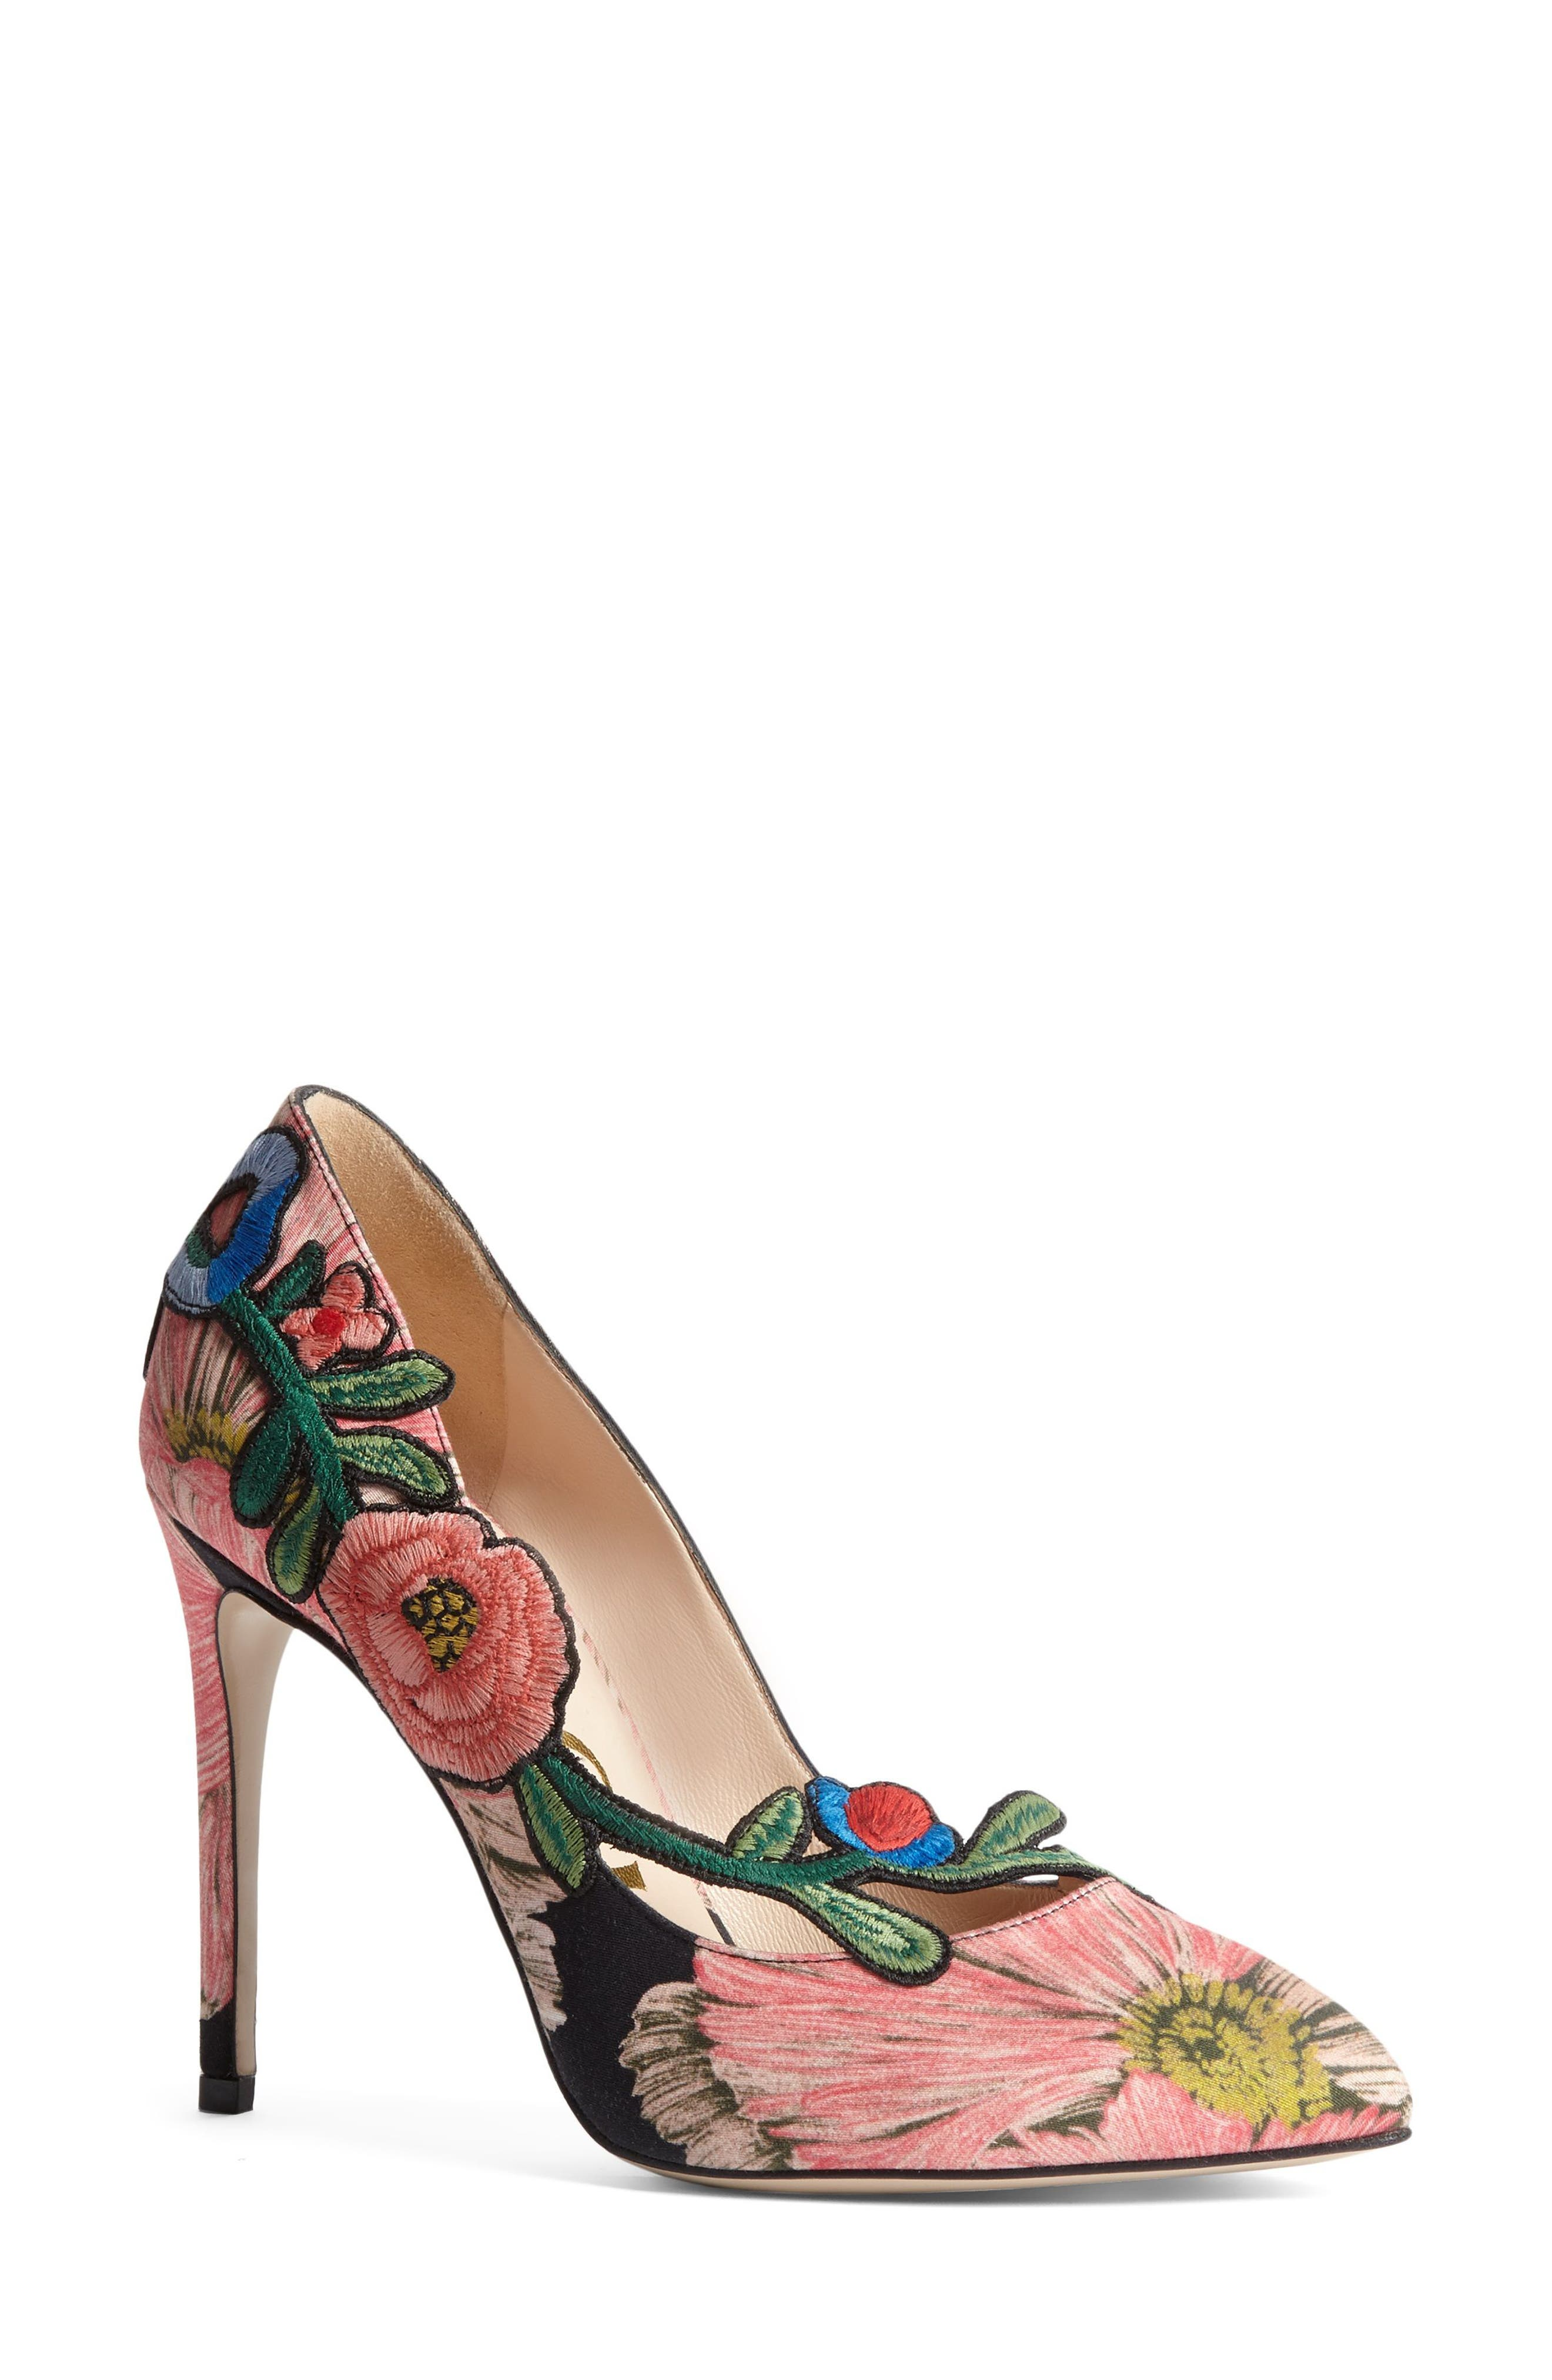 GUCCI Ophelia Floral Pump